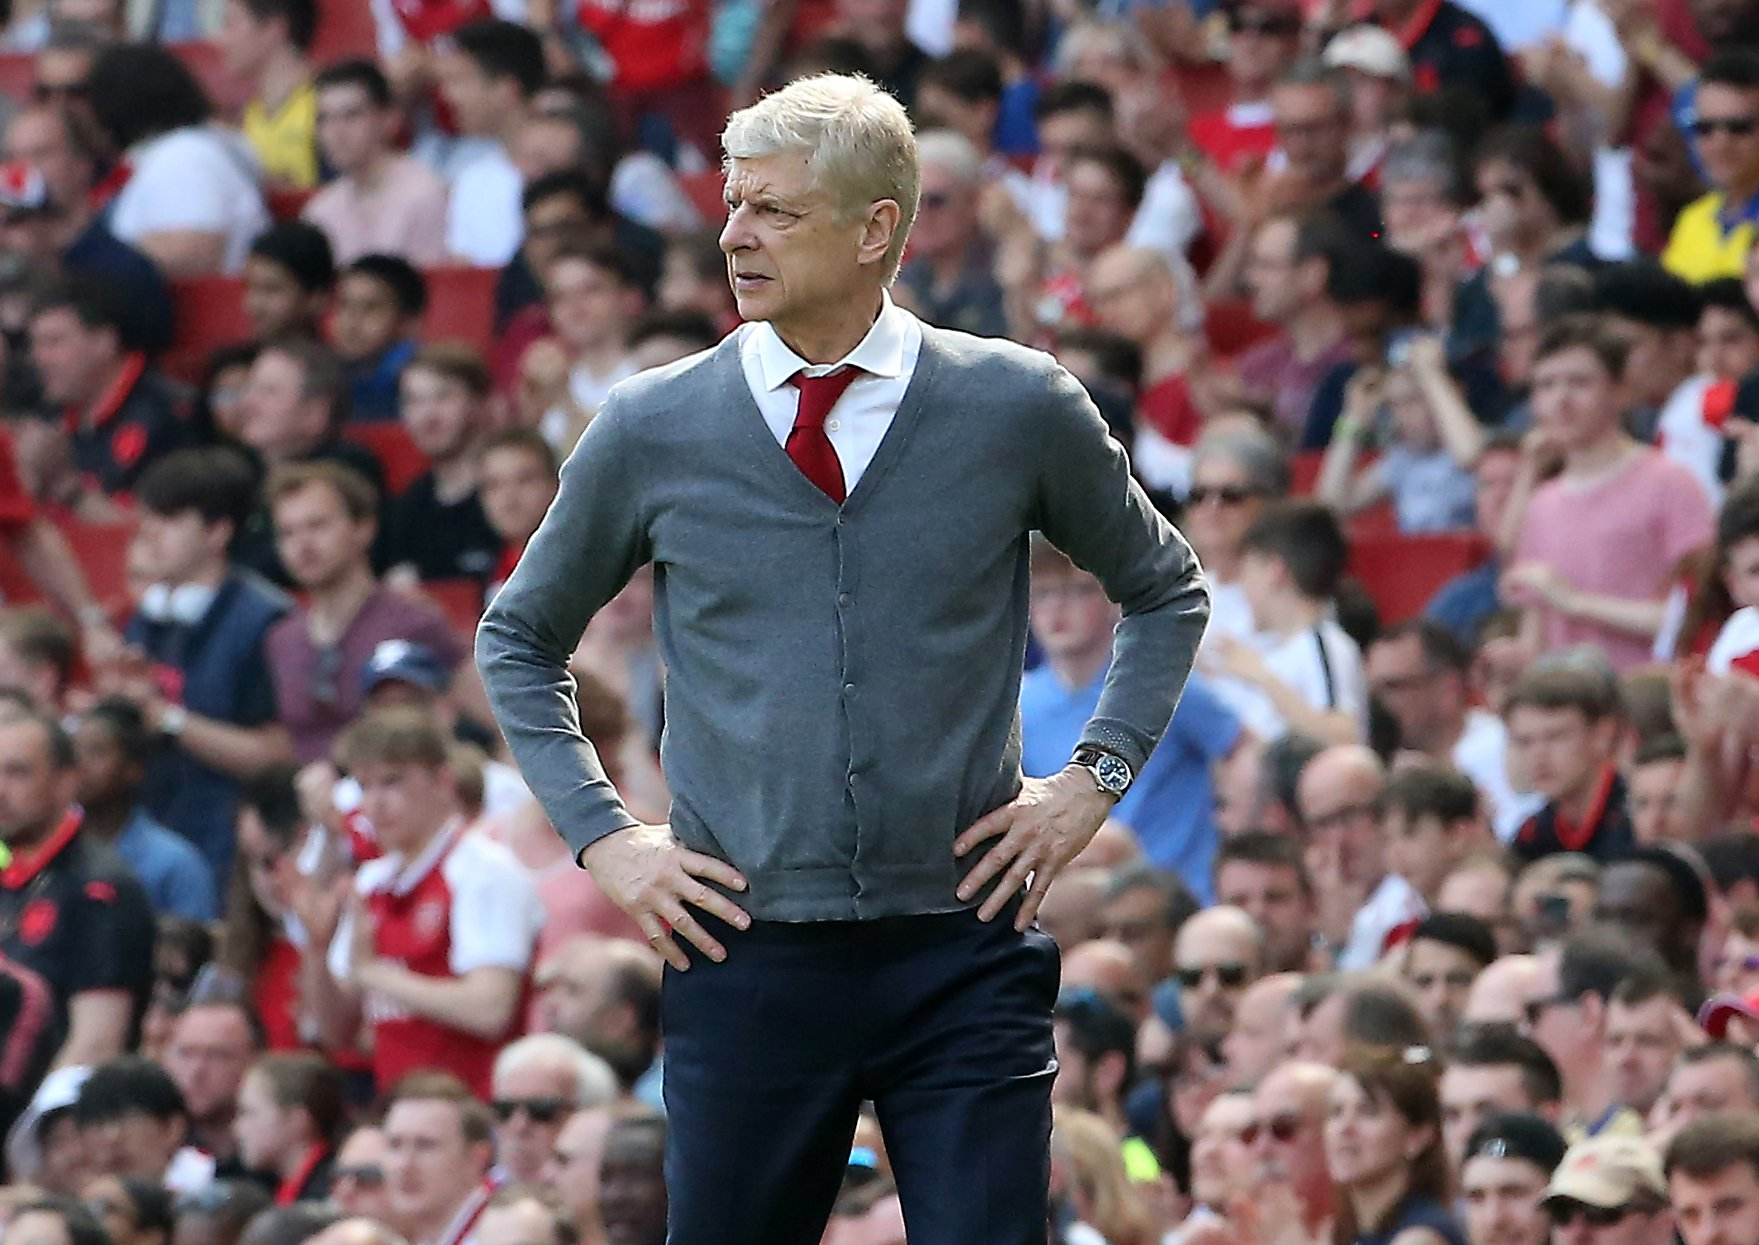 """Arsenal manager Arsene Wenger during the Premier League match at the Emirates Stadium, London. PRESS ASSOCIATION Photo. Picture date: Sunday April 22, 2018. See PA story SOCCER Arsenal. Photo credit should read: Mark Kerton/PA Wire. RESTRICTIONS: EDITORIAL USE ONLY No use with unauthorised audio, video, data, fixture lists, club/league logos or """"live"""" services. Online in-match use limited to 75 images, no video emulation. No use in betting, games or single club/league/player publications."""